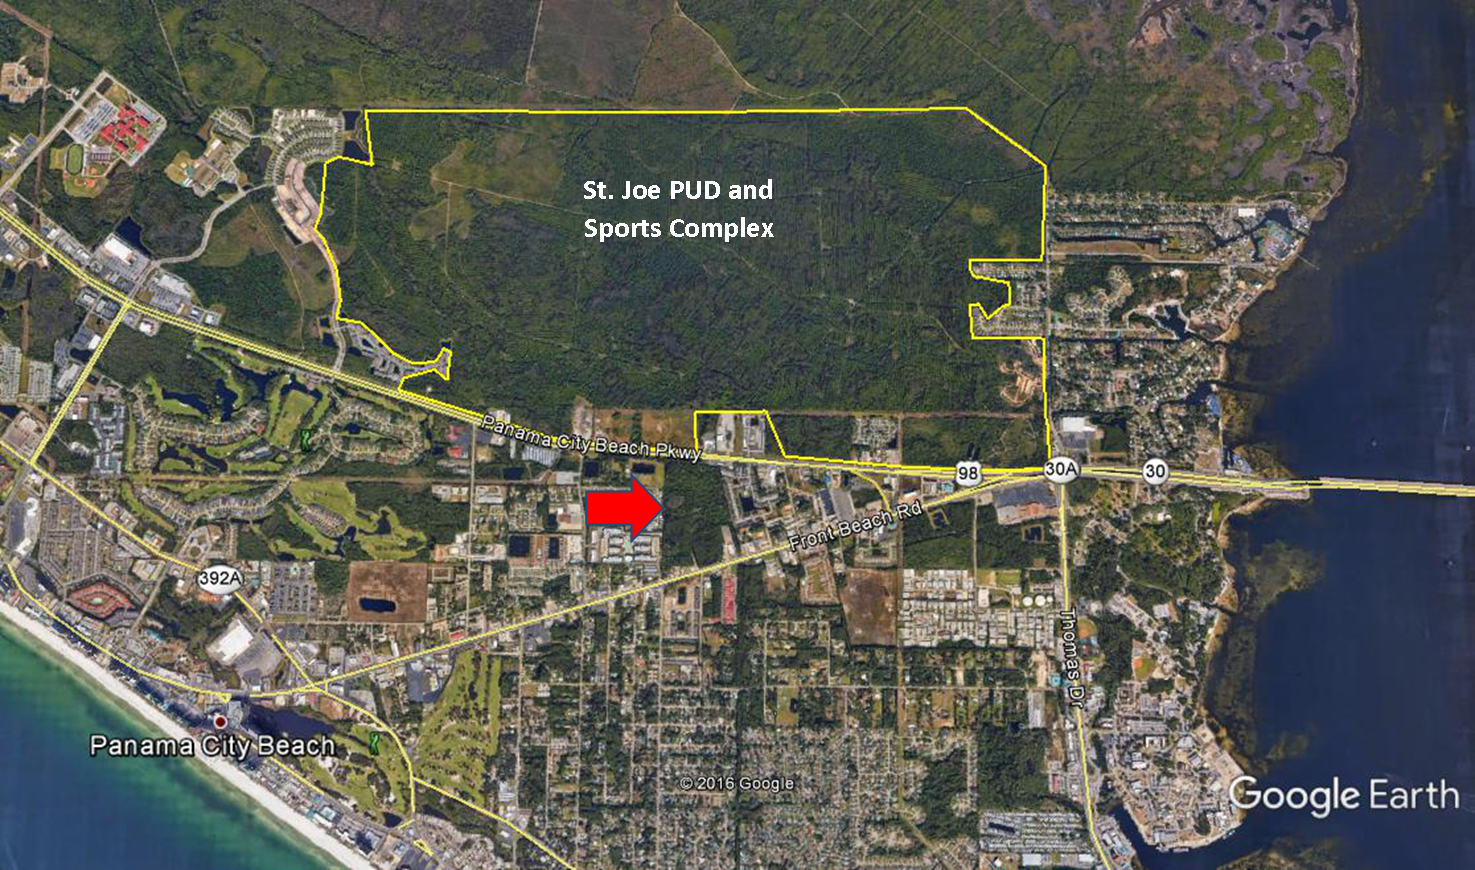 32 Acre Commercial Property In Panama City Beach